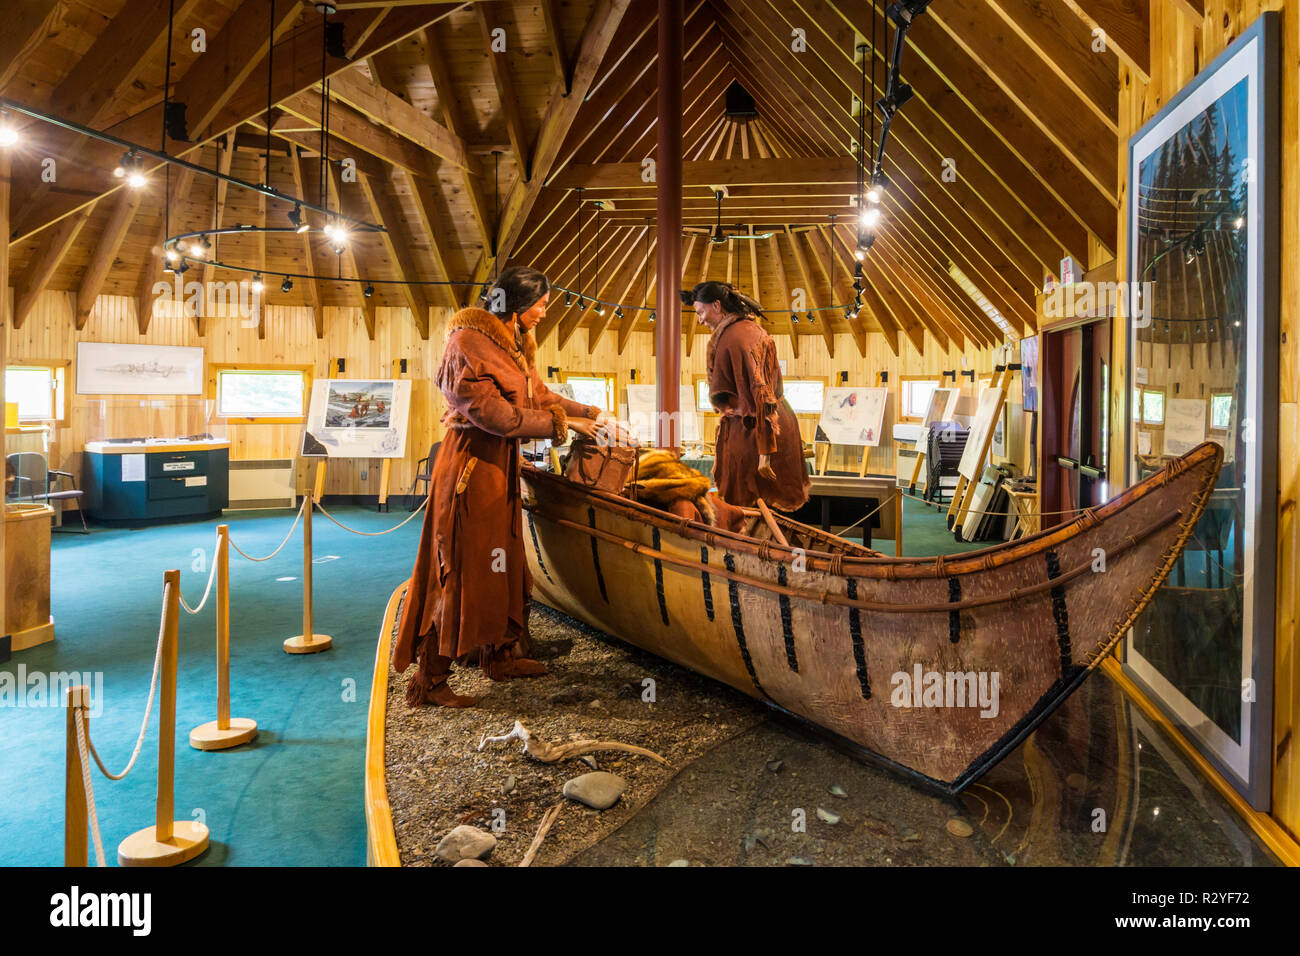 Exhibition inside the Beothuk Interpretation Centre Provincial Historic Site at Boyd's Cove, Newfoundland. - Stock Image